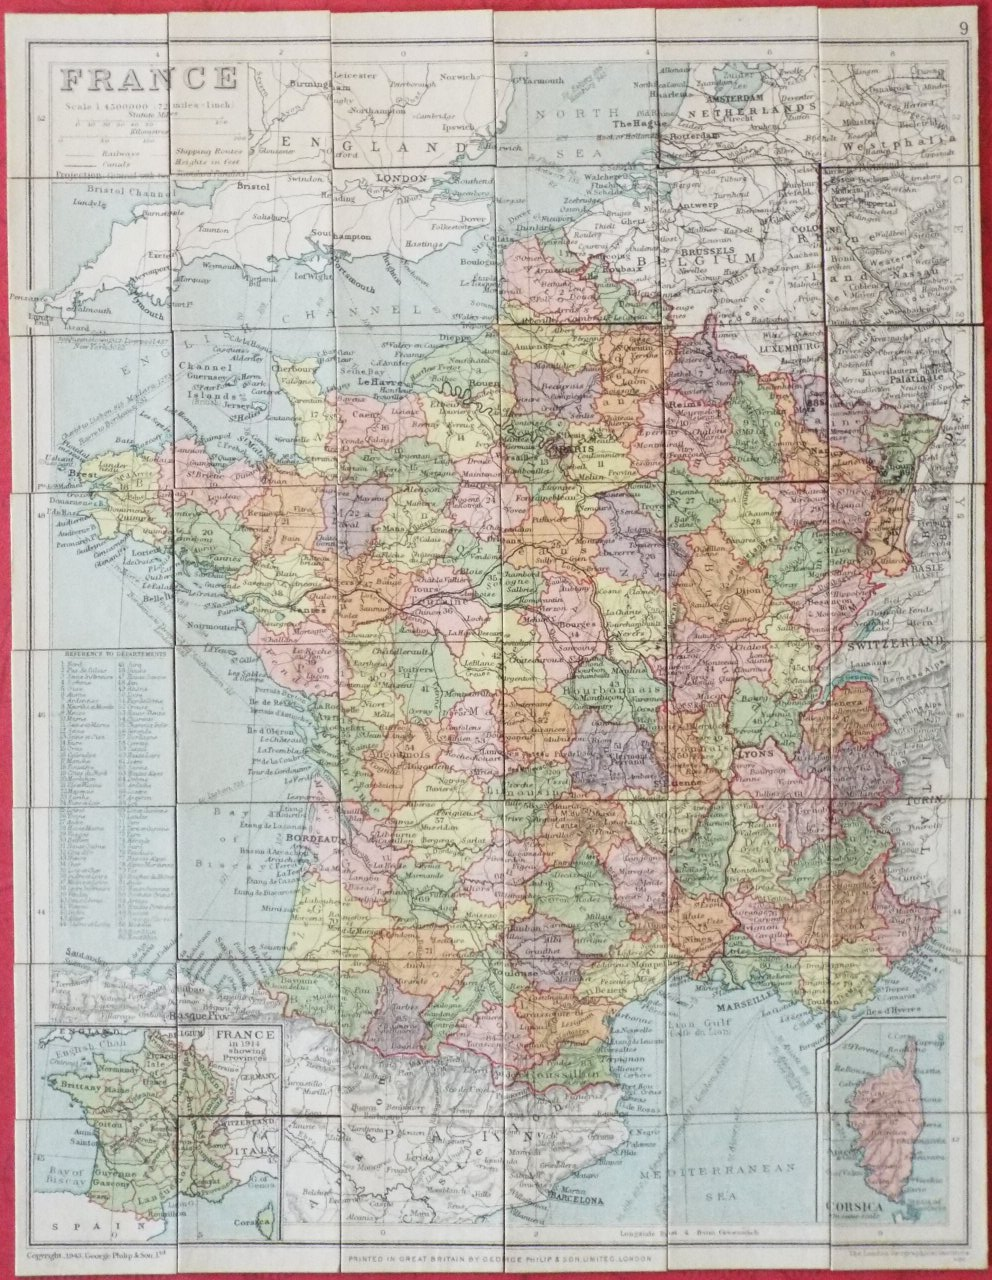 Map of France - Philip